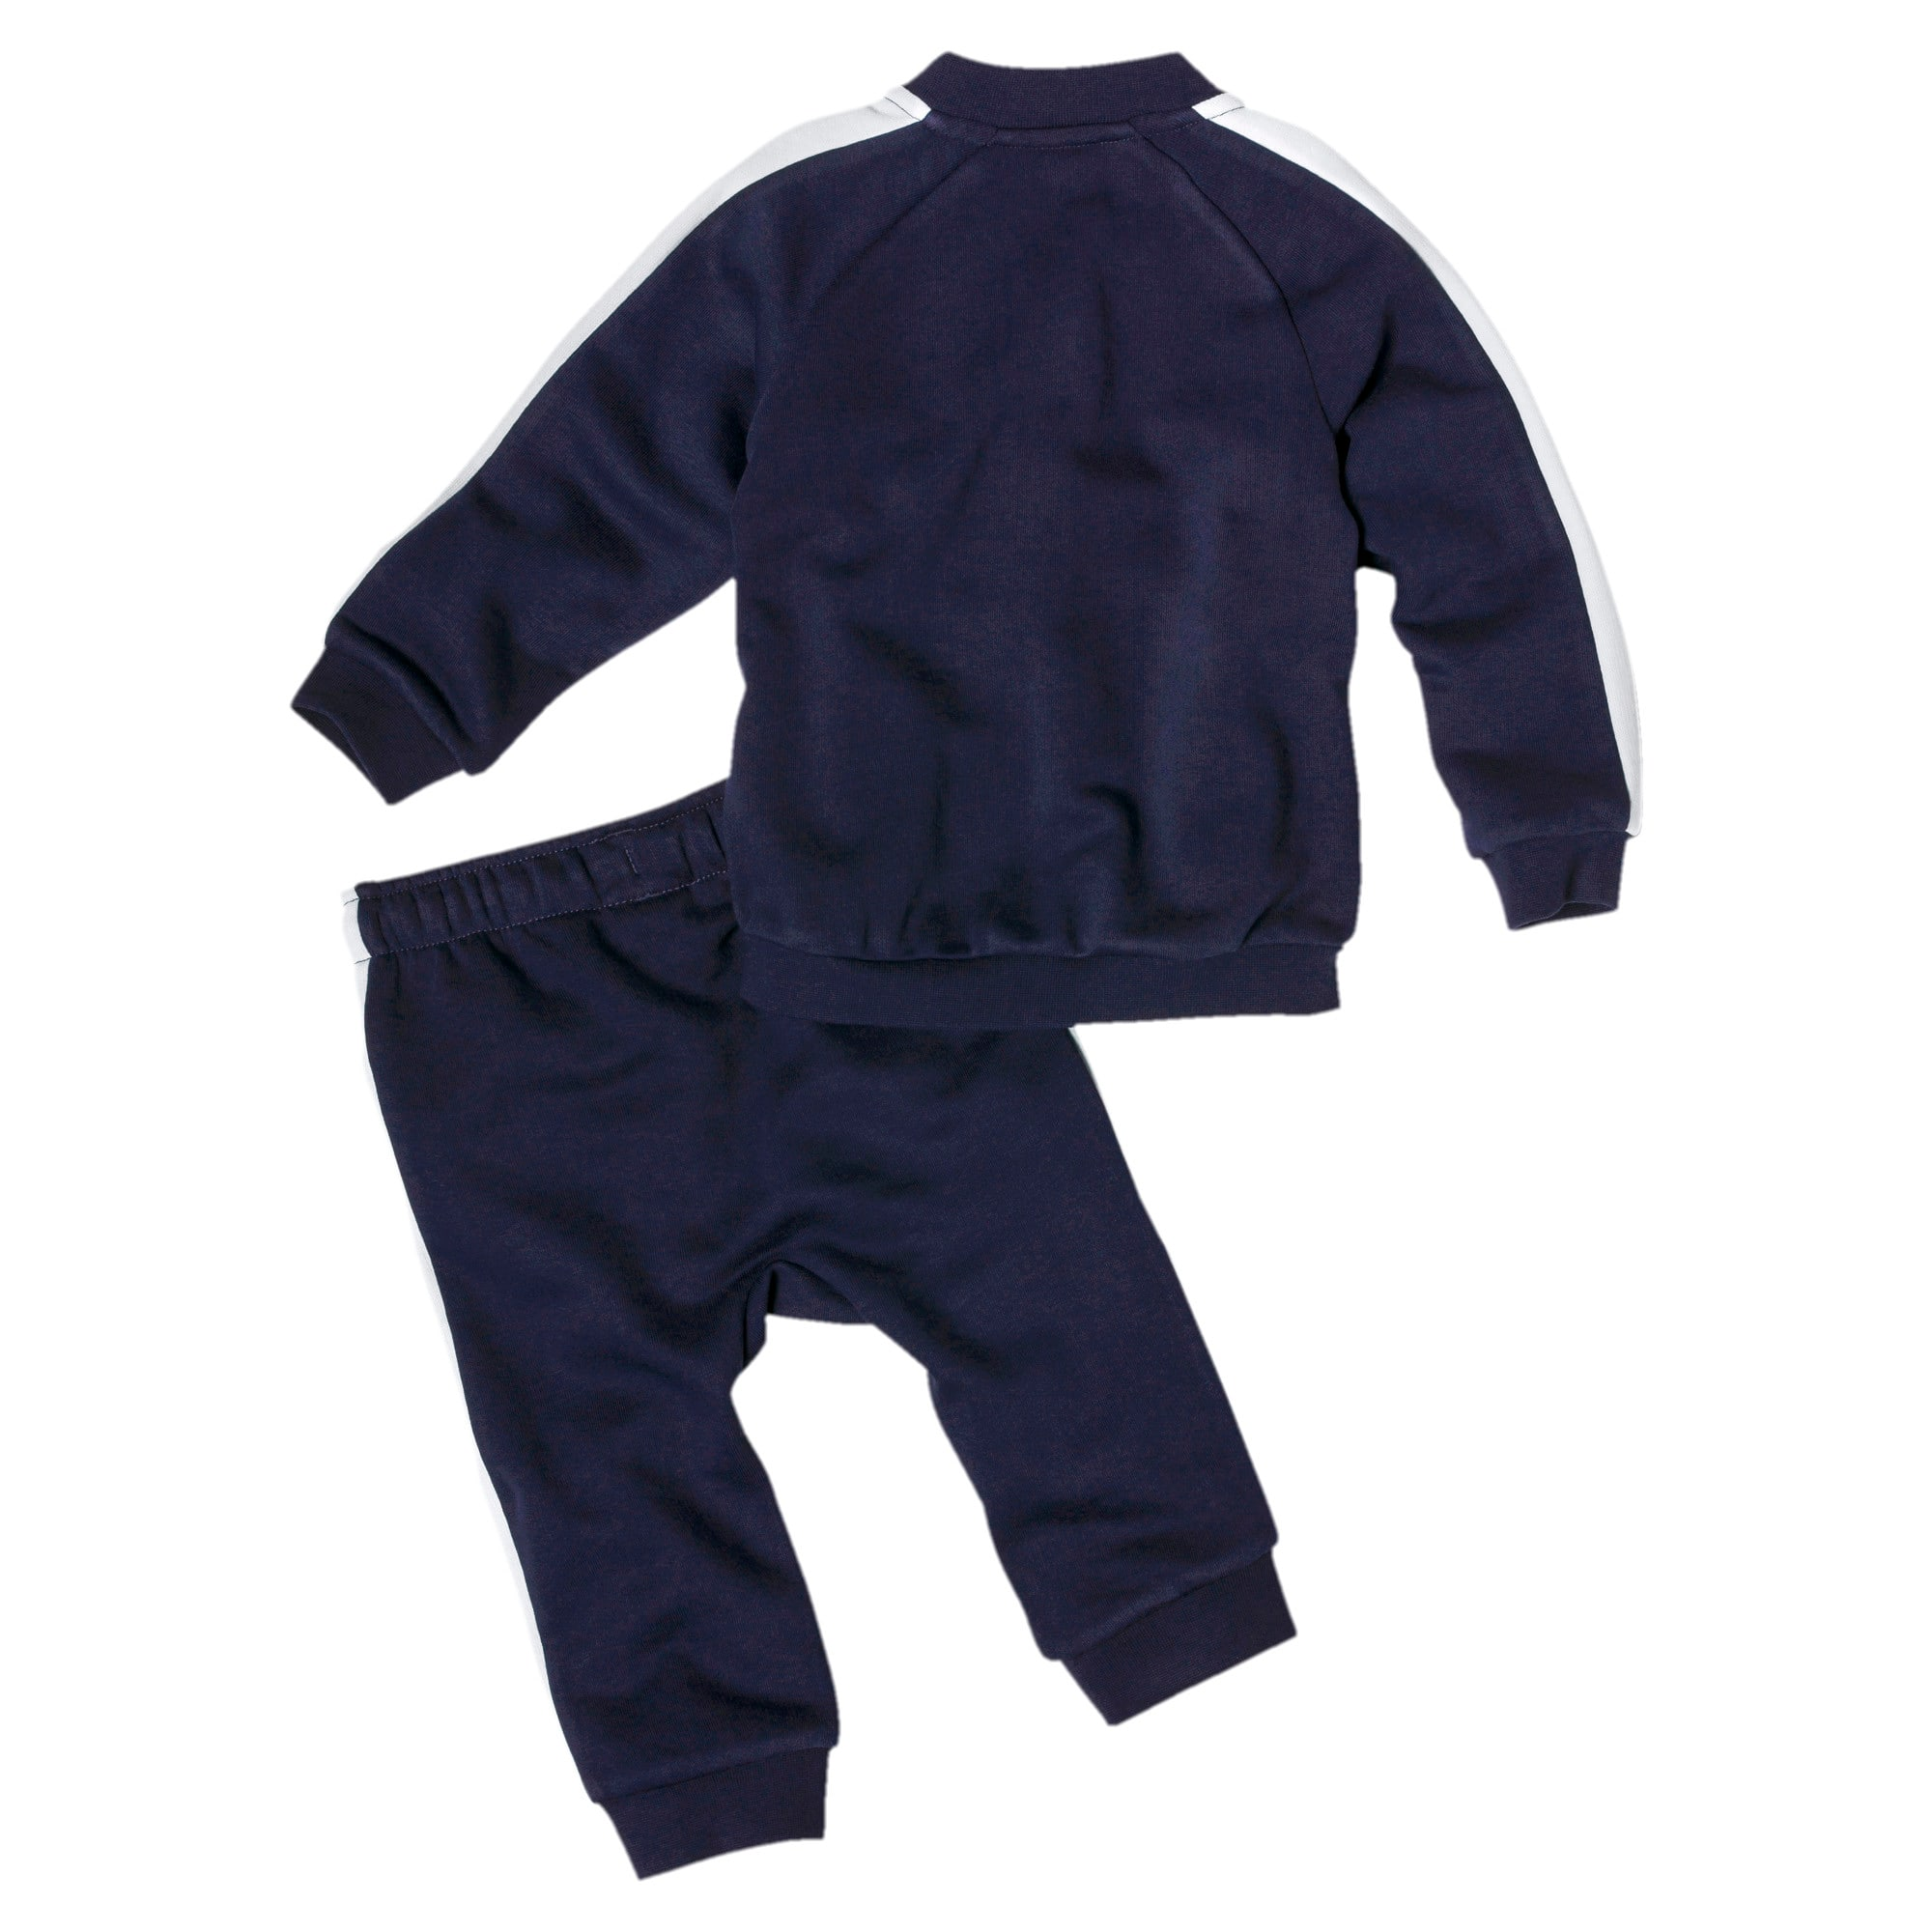 Thumbnail 2 of Minicats T7 Full Zip Babies' Jogger Set, Peacoat, medium